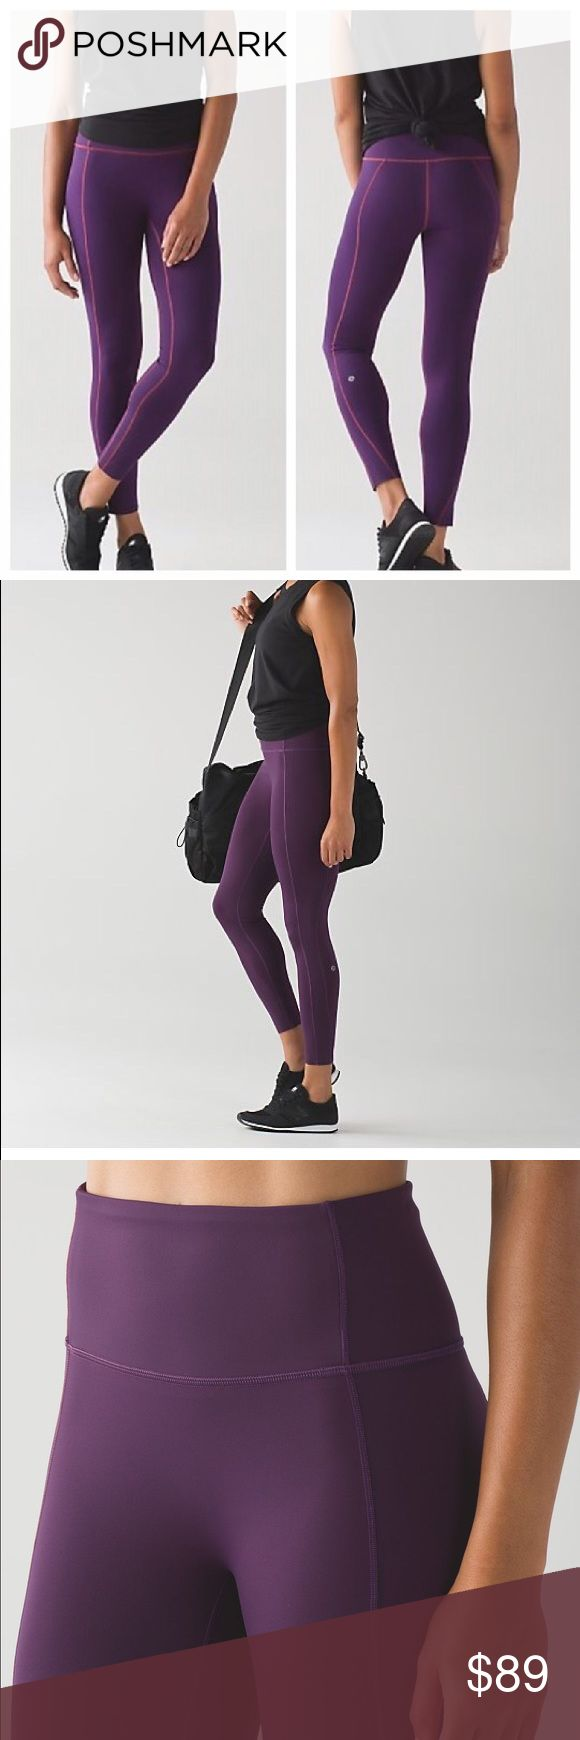 "Lululemon like nothing 7/8 tight ""Like Nothing 7/8 tight"" Retails for $128  Color darkest magenta  Size 2  Nulux material! Lululemon's new fabric that feels like you're not wearing anything - smoother than Lyon and not as paper-y feeling as the Tight Stuff Tights - they offer nice support and sweat-wicking, quick-drying as well!  High rise for a held in feeling  Pocket hidden in inside back.   New with tags  PRICE FIRM! lululemon athletica Pants Leggings"